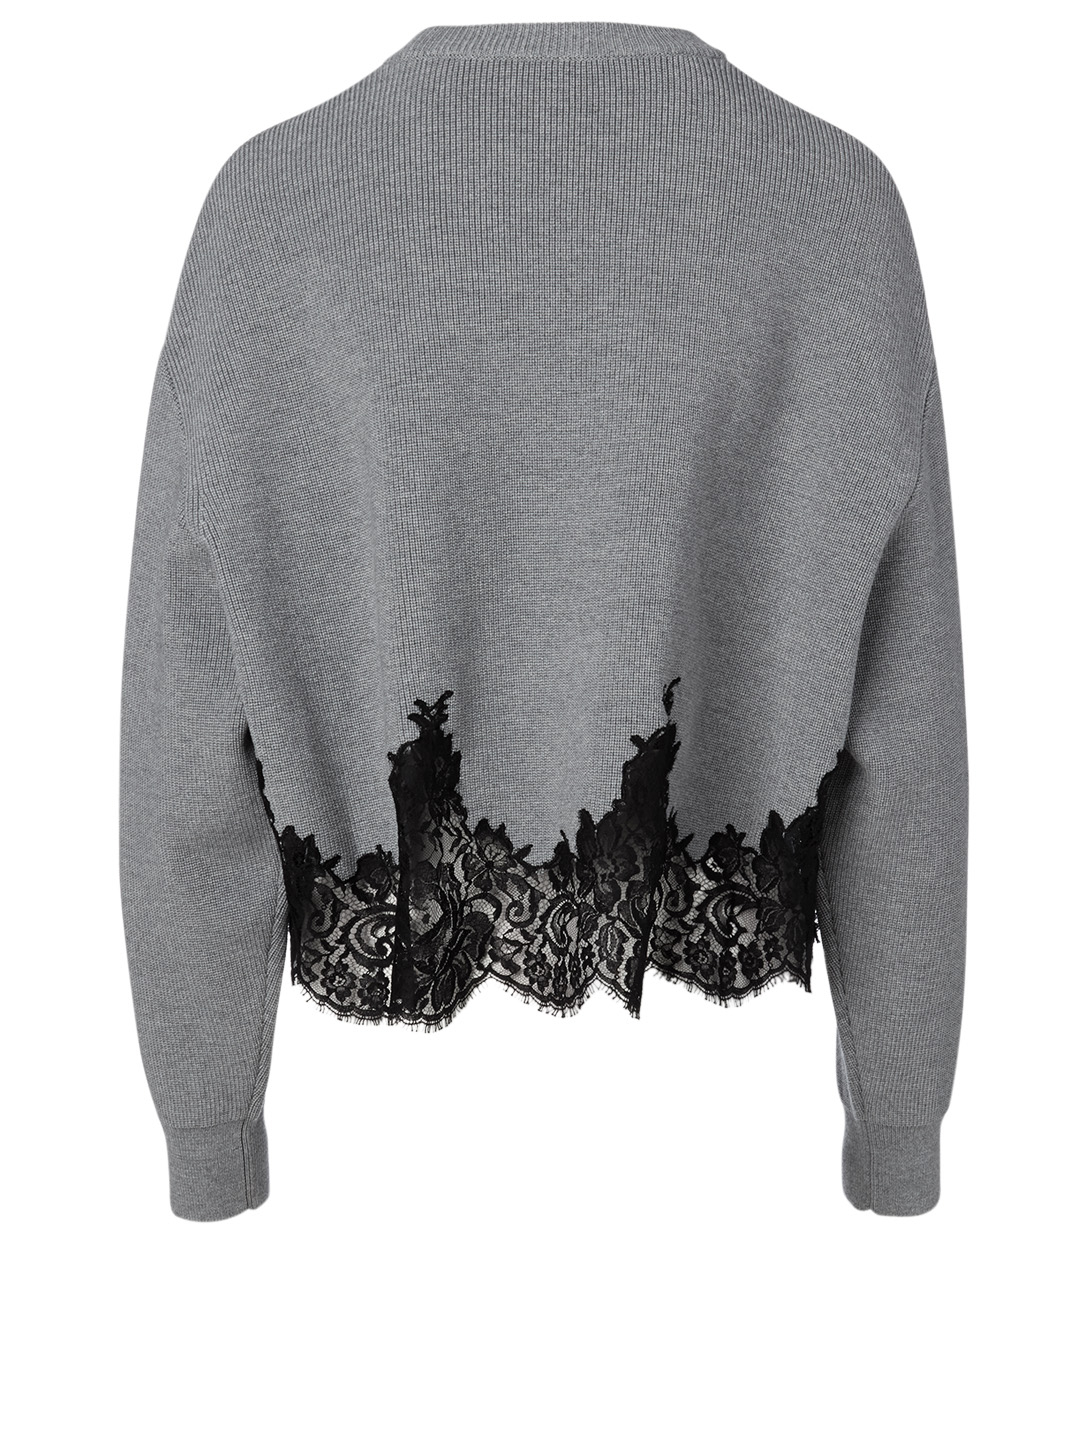 GIVENCHY Wool Sweater With Lace Women's Grey